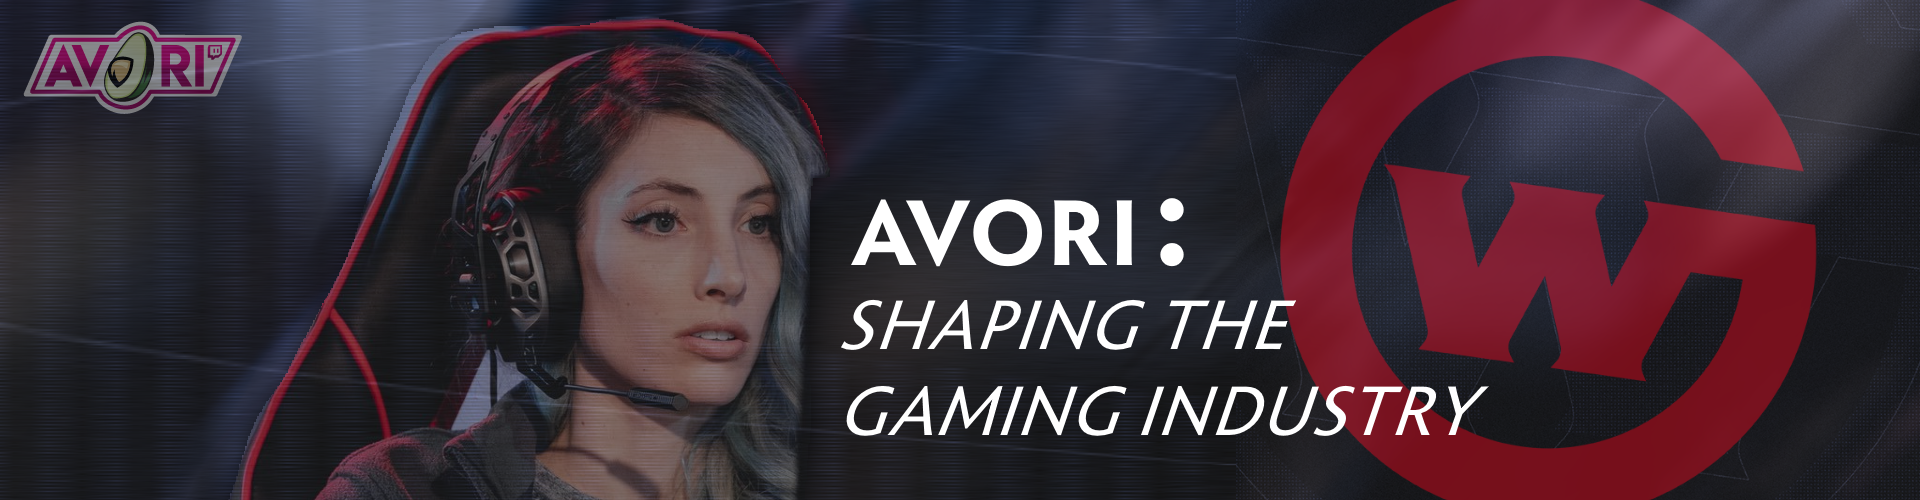 Avori : Shaping the Gaming Industry